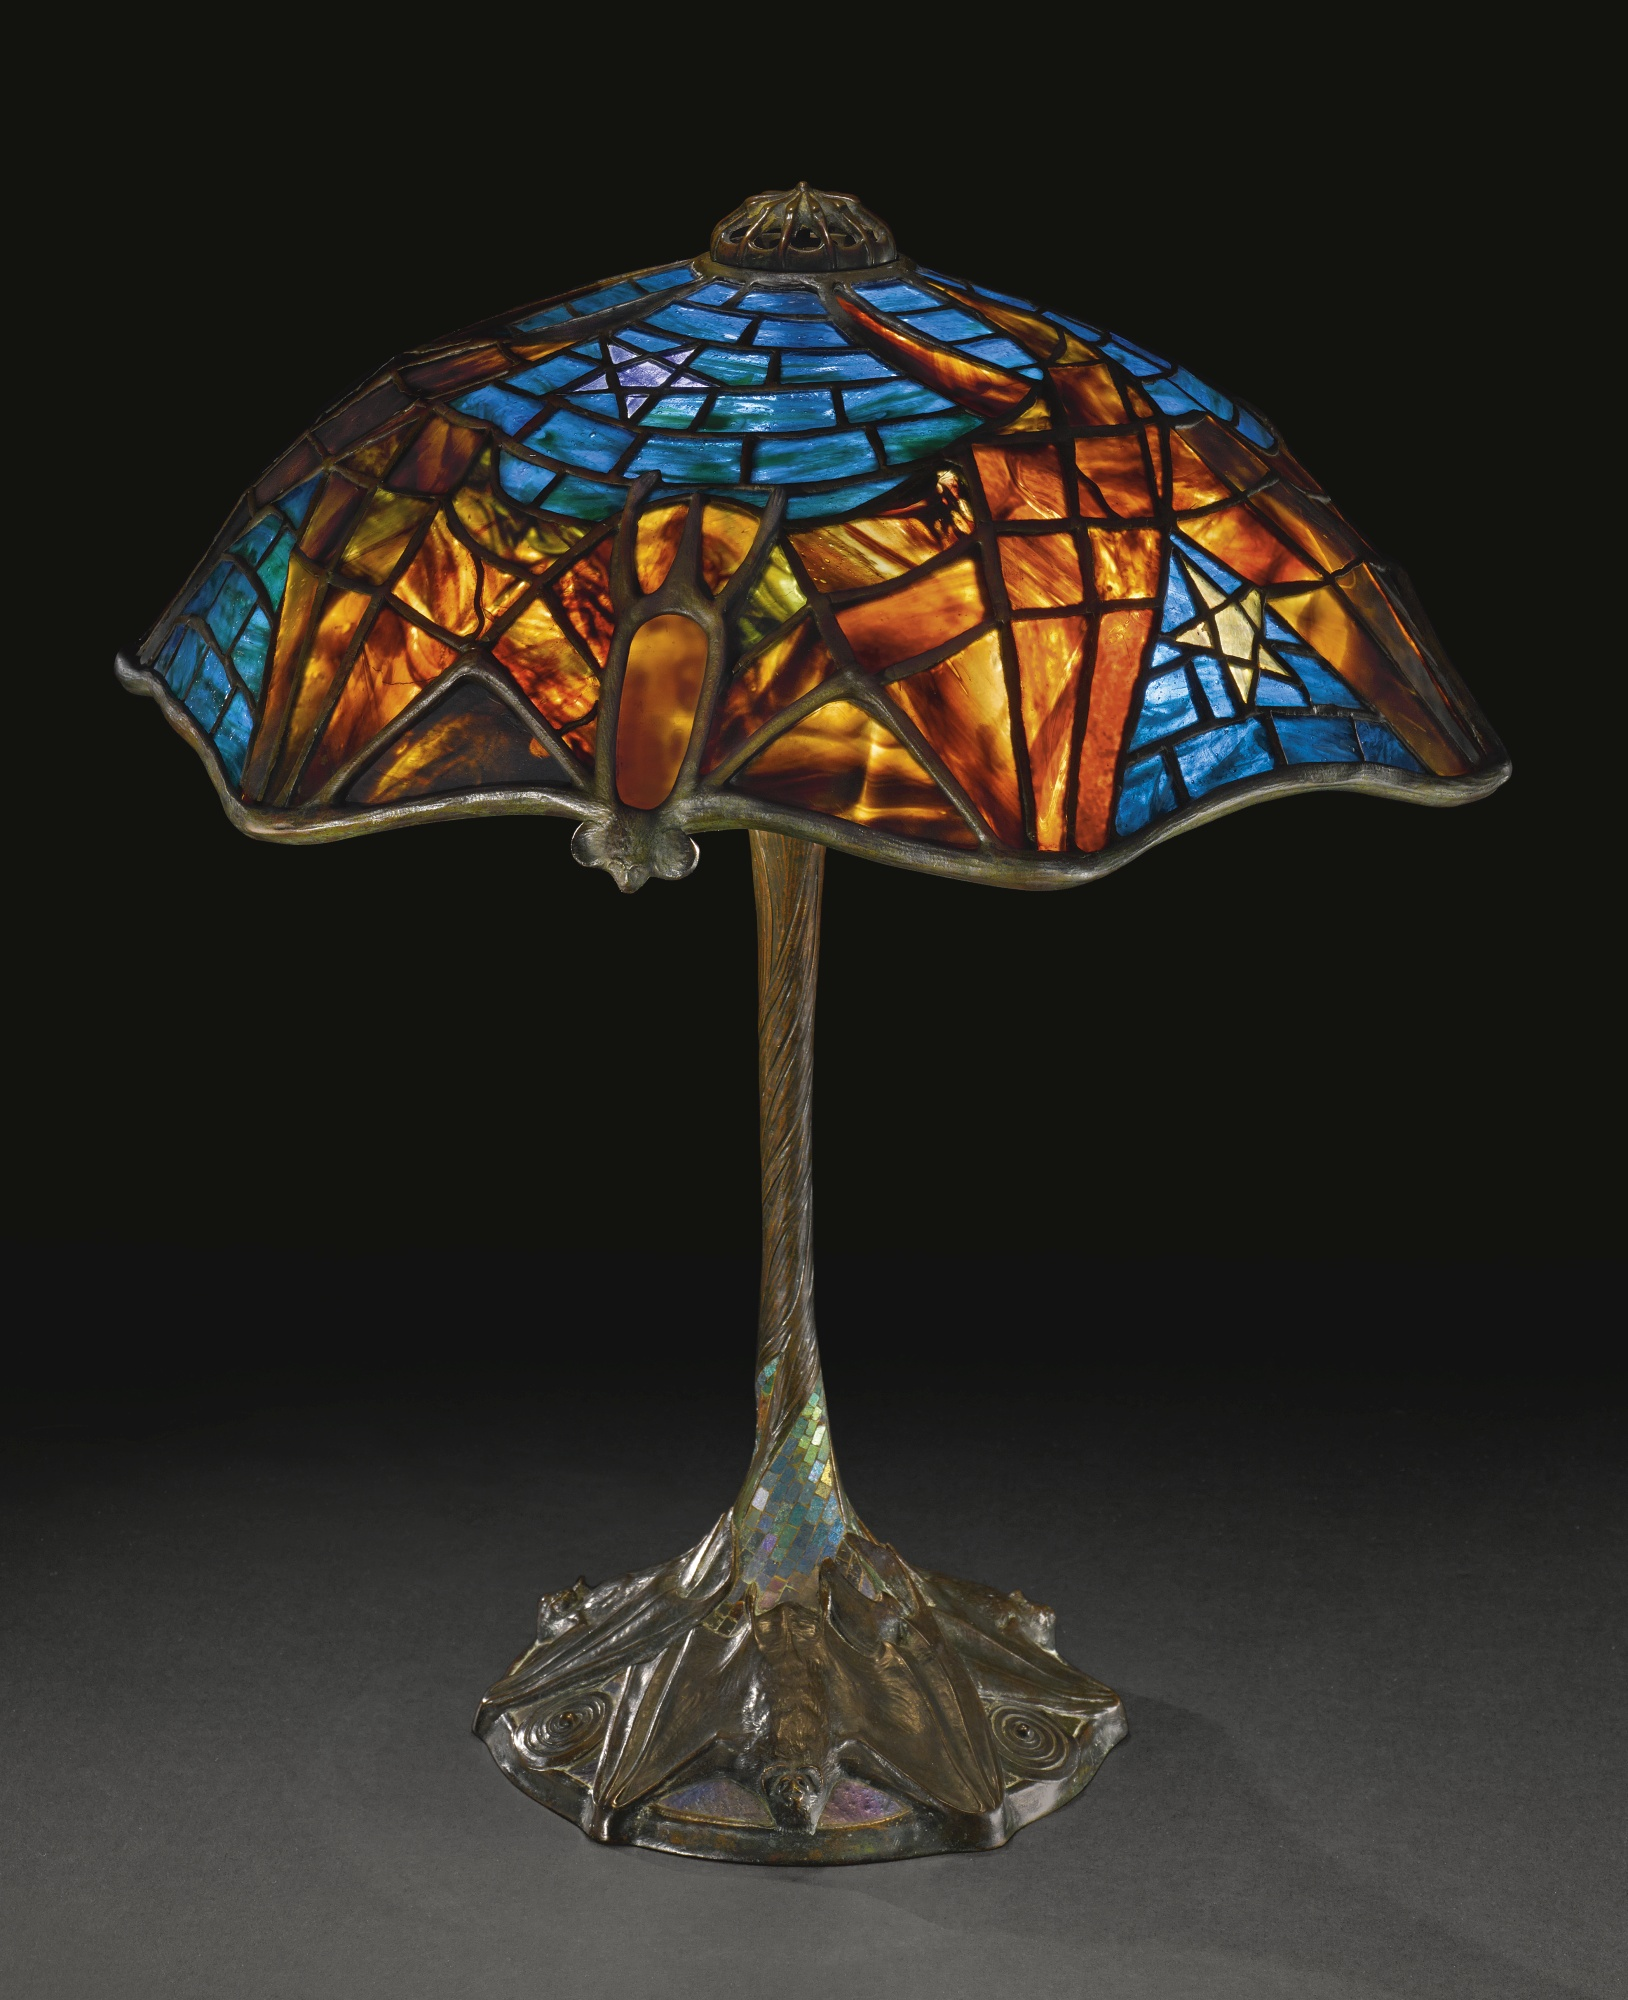 10 facts about authentic tiffany lamps warisan lighting for Tiffany lampen